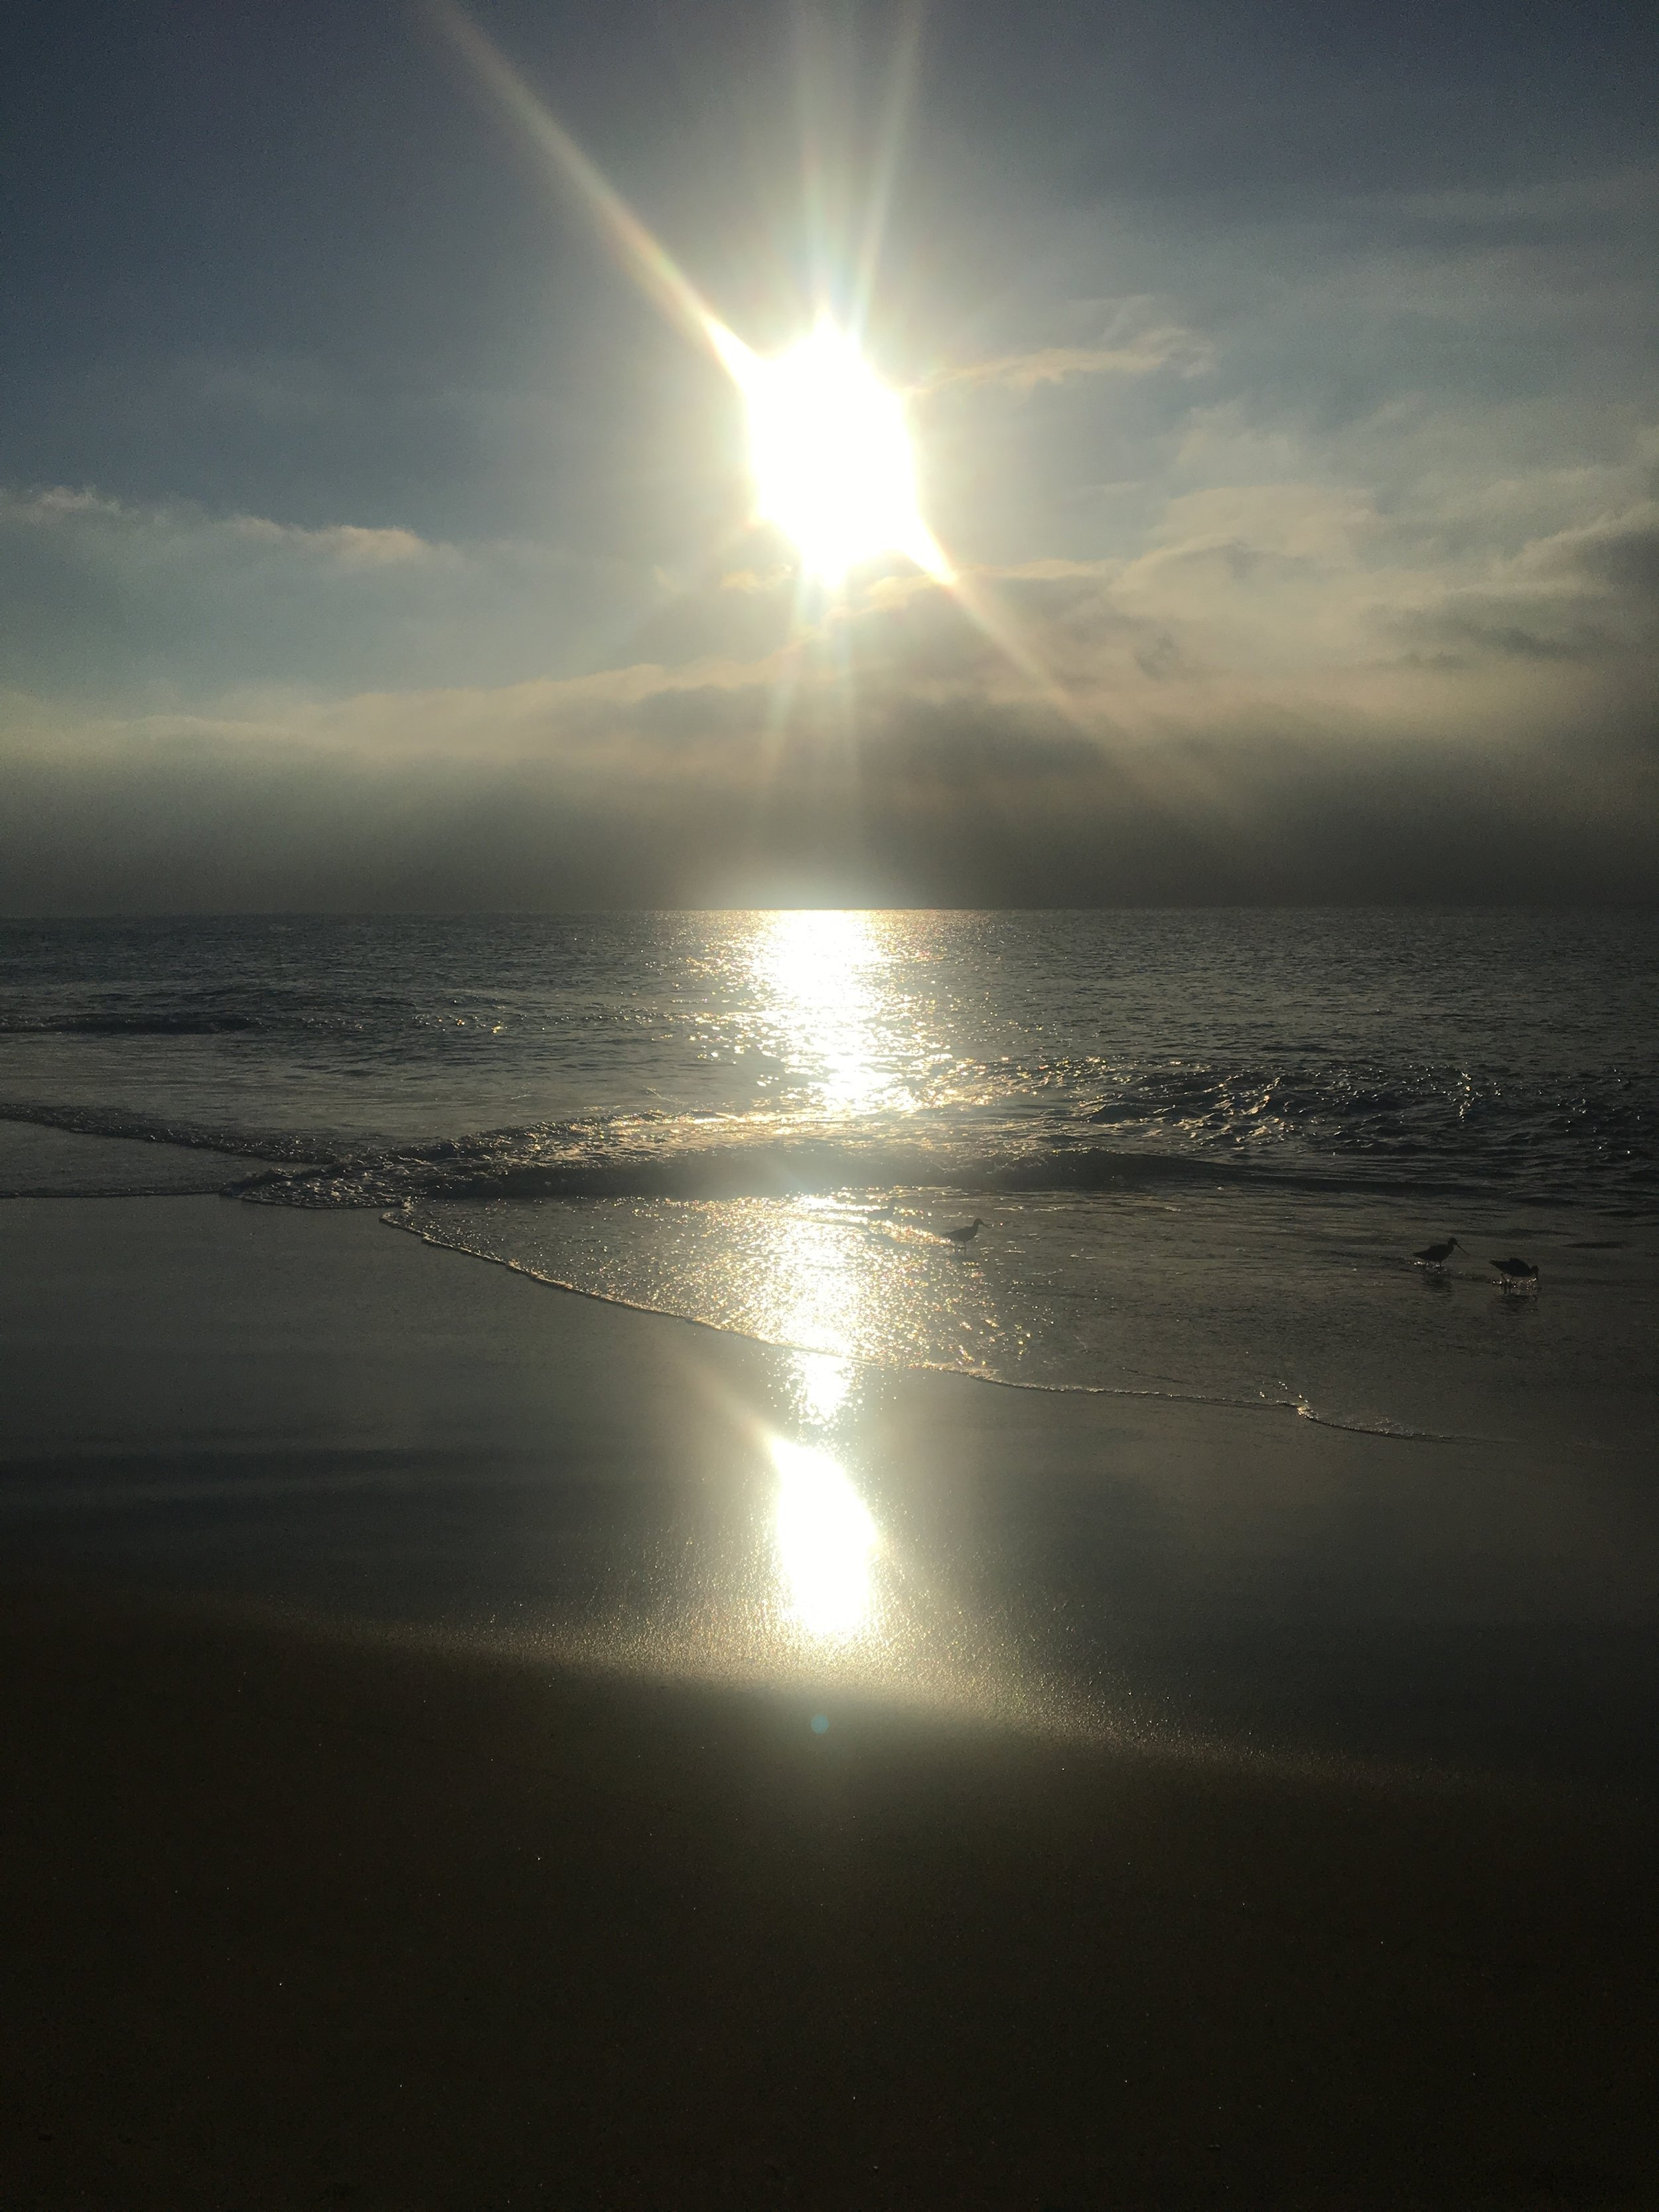 This was my view on the morning before the Winter Solstice in Malibu. Darkness and light.